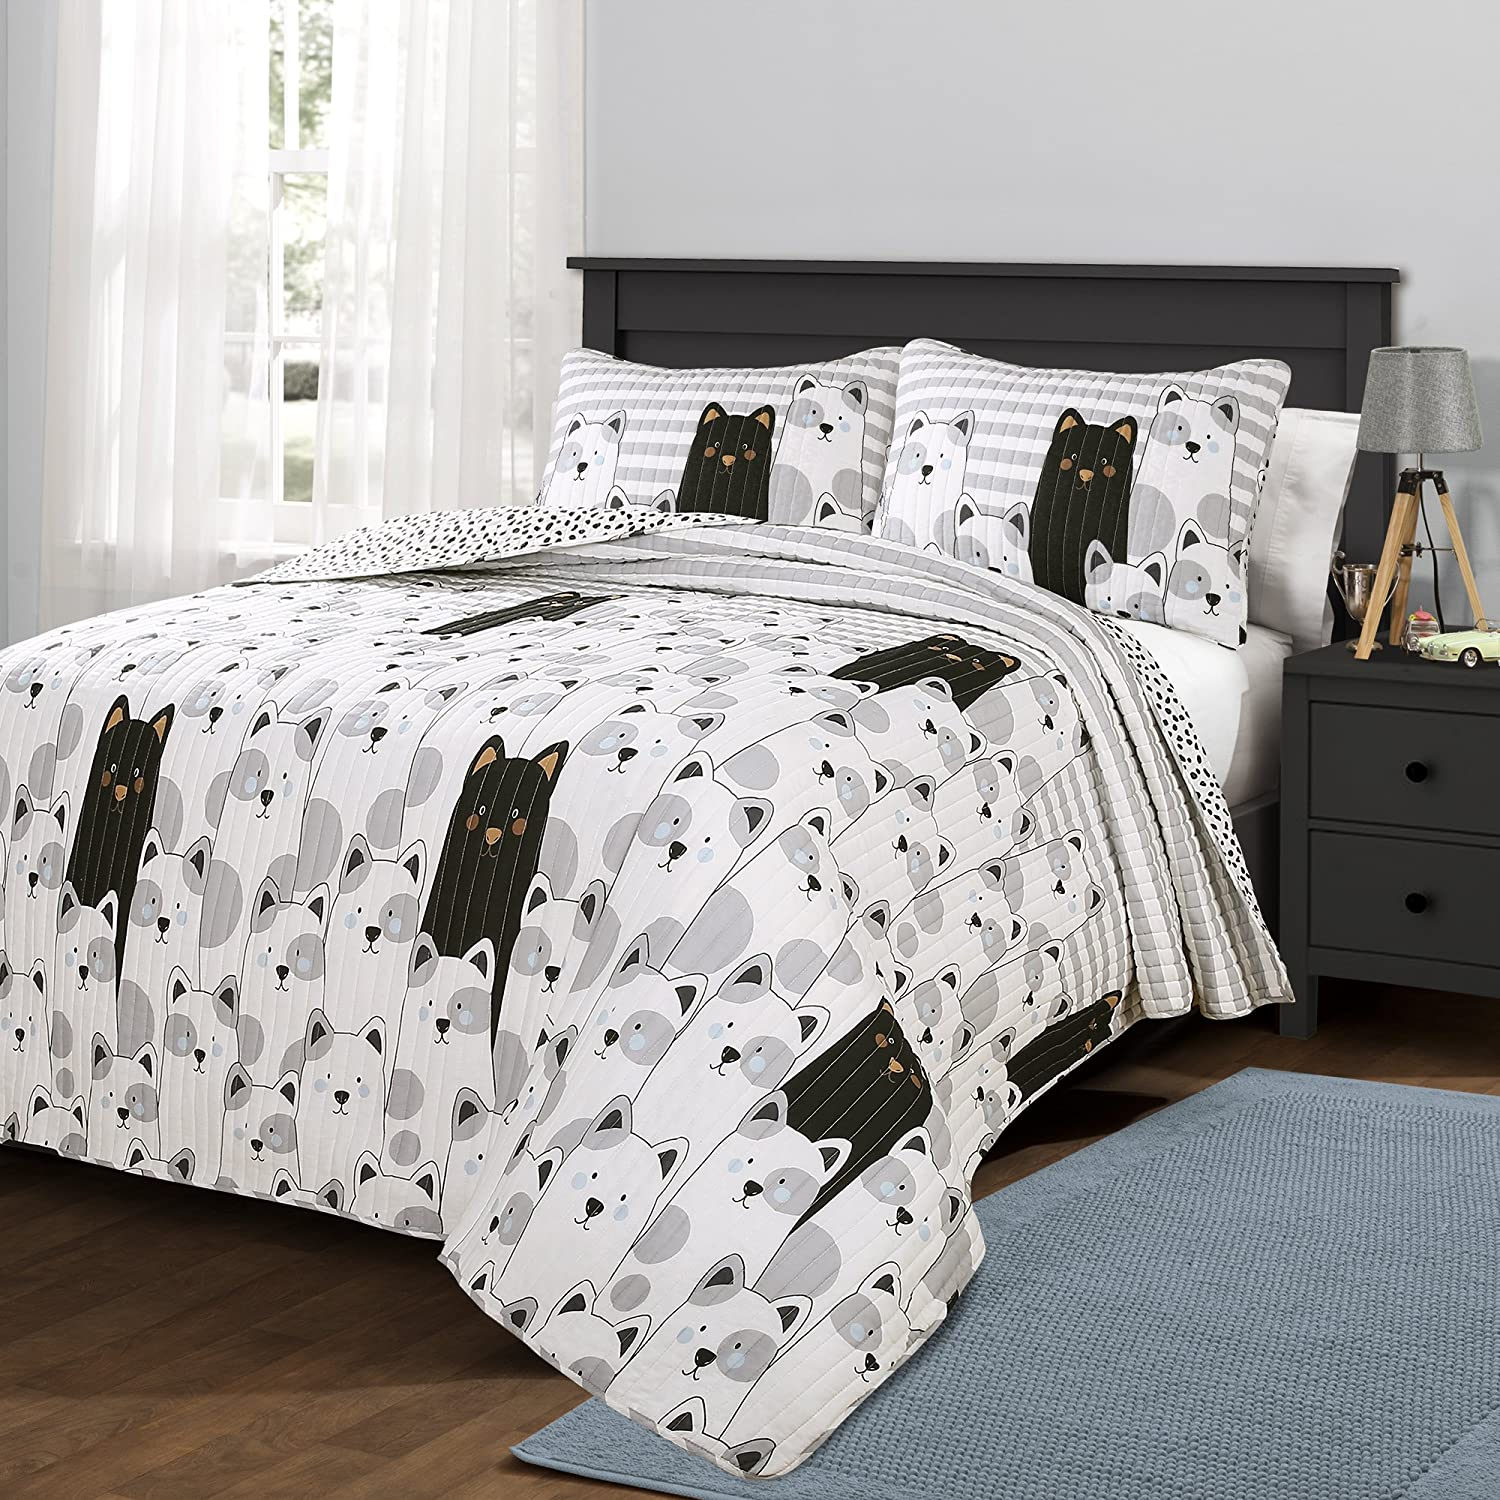 Lush Decor Bear Striped Quilt Reversible 2 Piece Cartoon Zoo Kids Bedding Set-Twin-Gray and Black